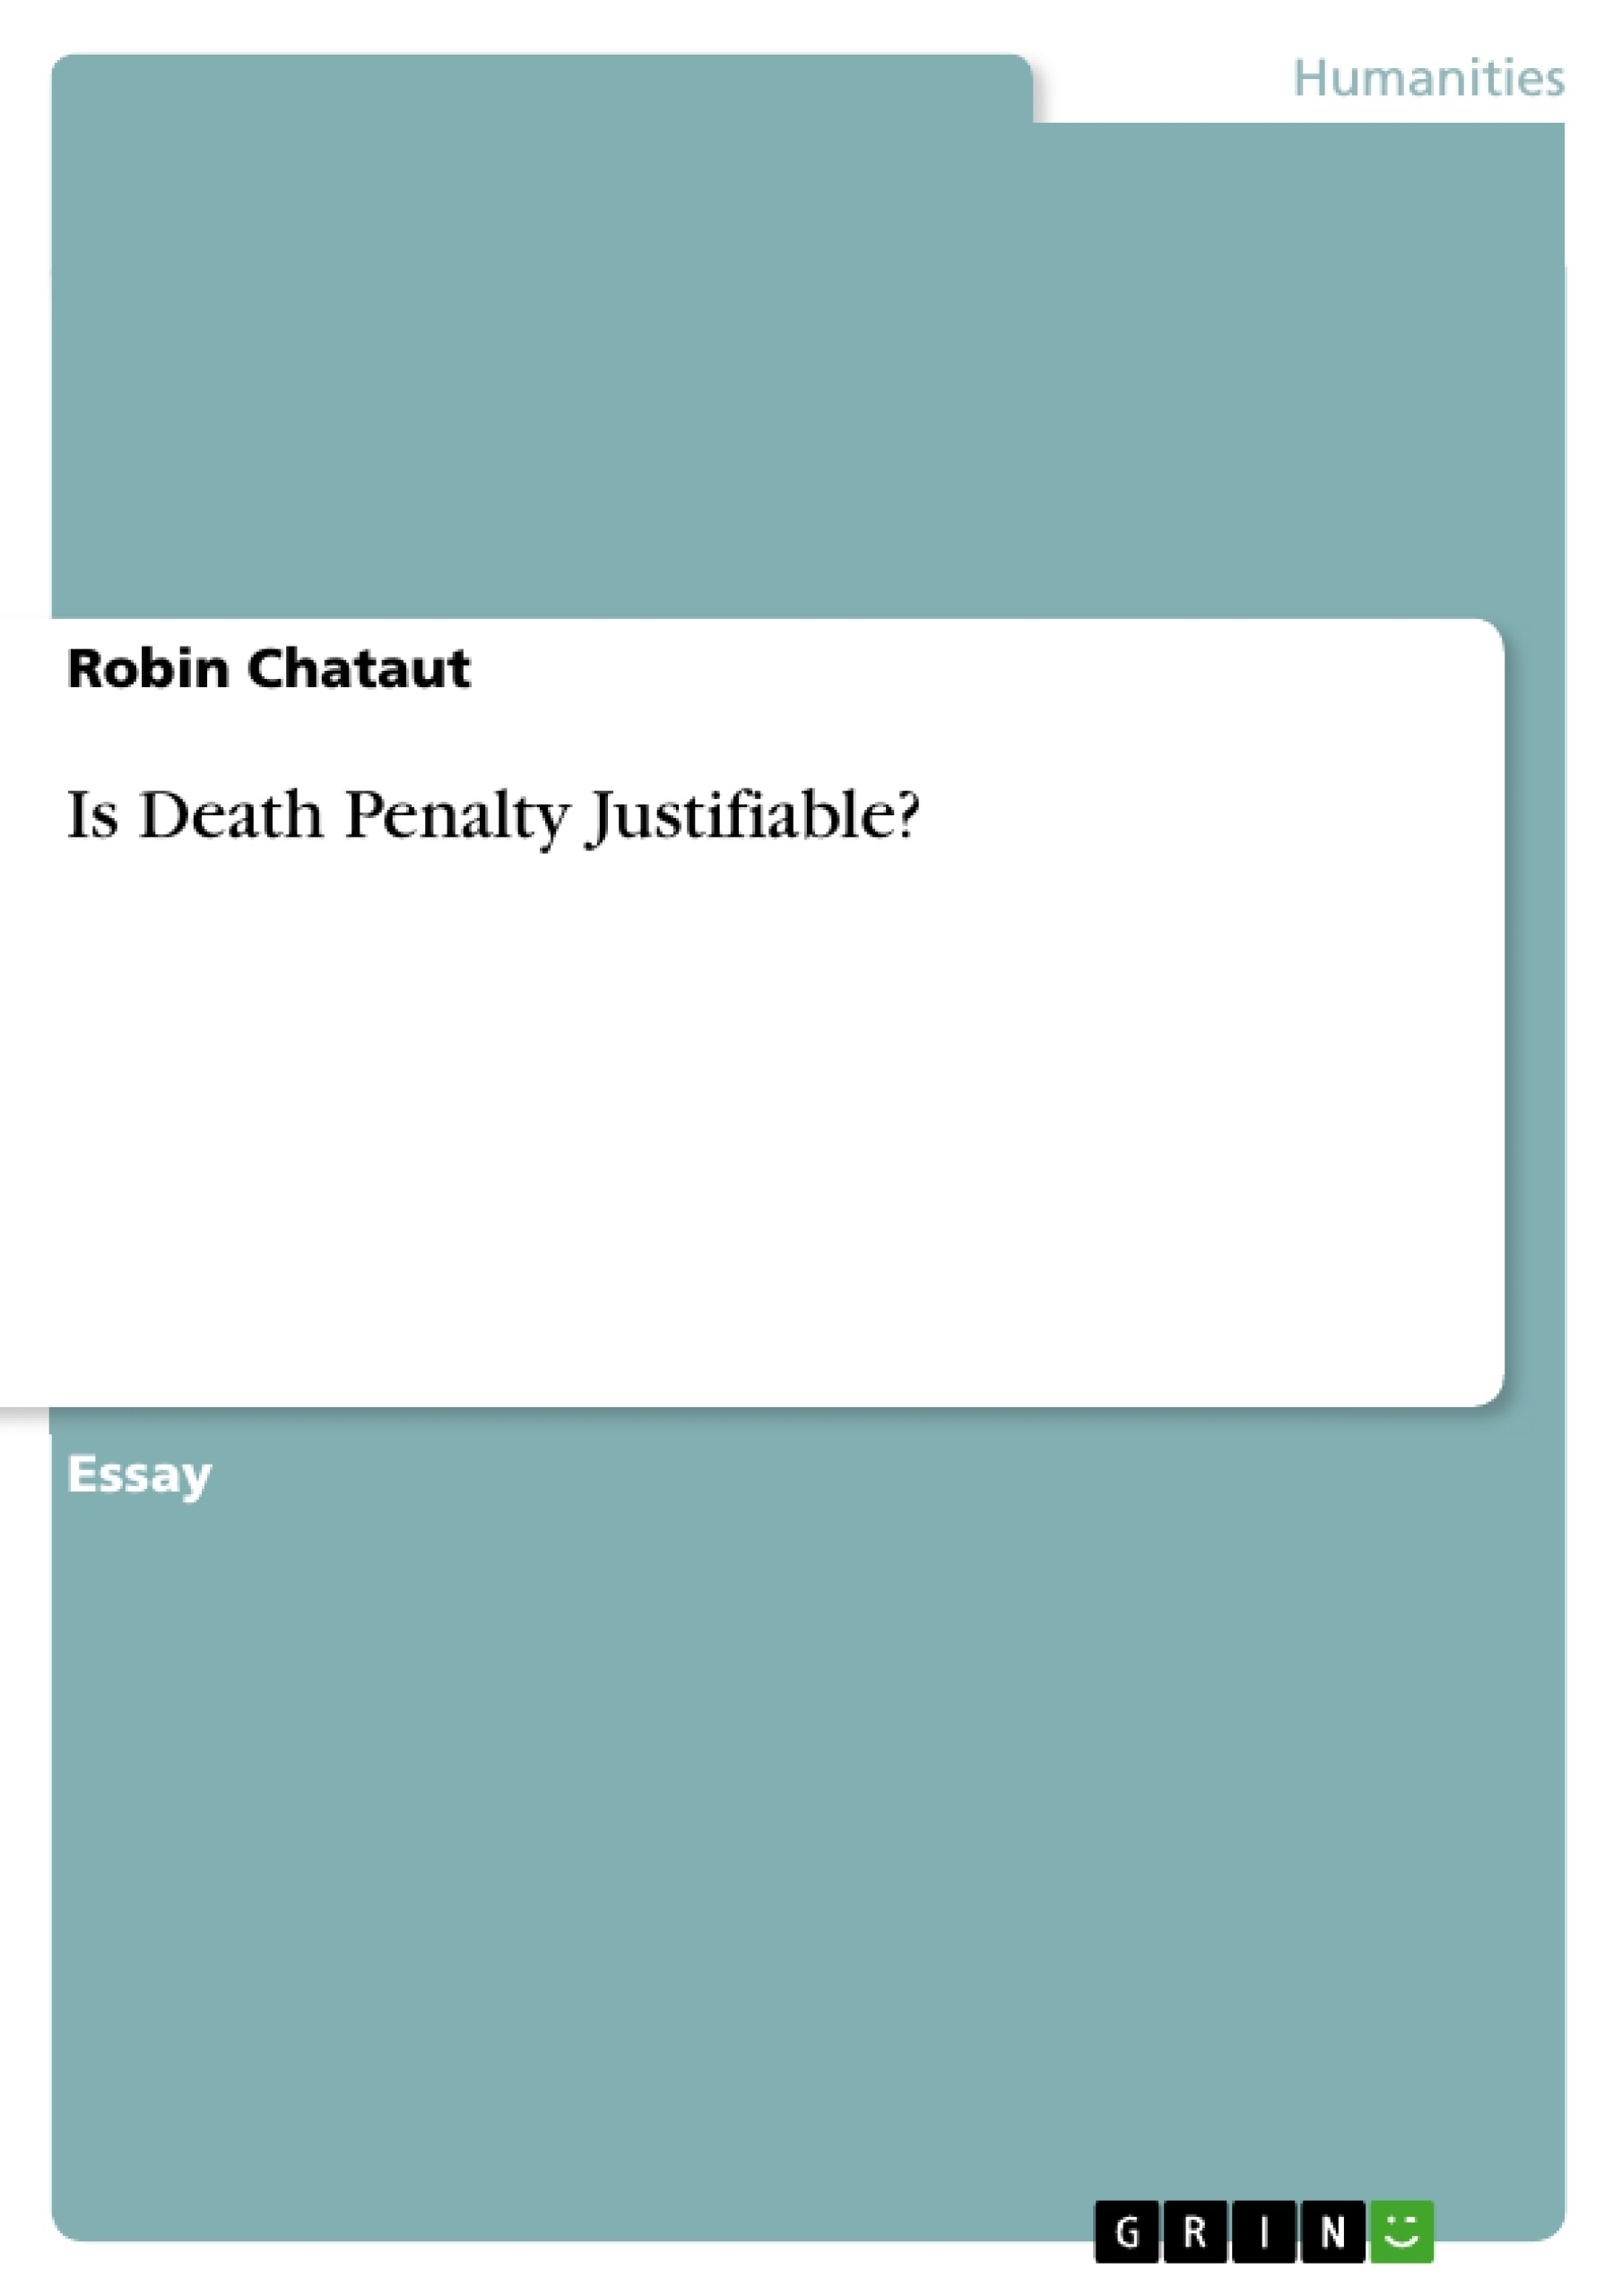 016 295417 0 Essay Example Against Death Unique Penalty Anti Tagalog Conclusion Examples Full